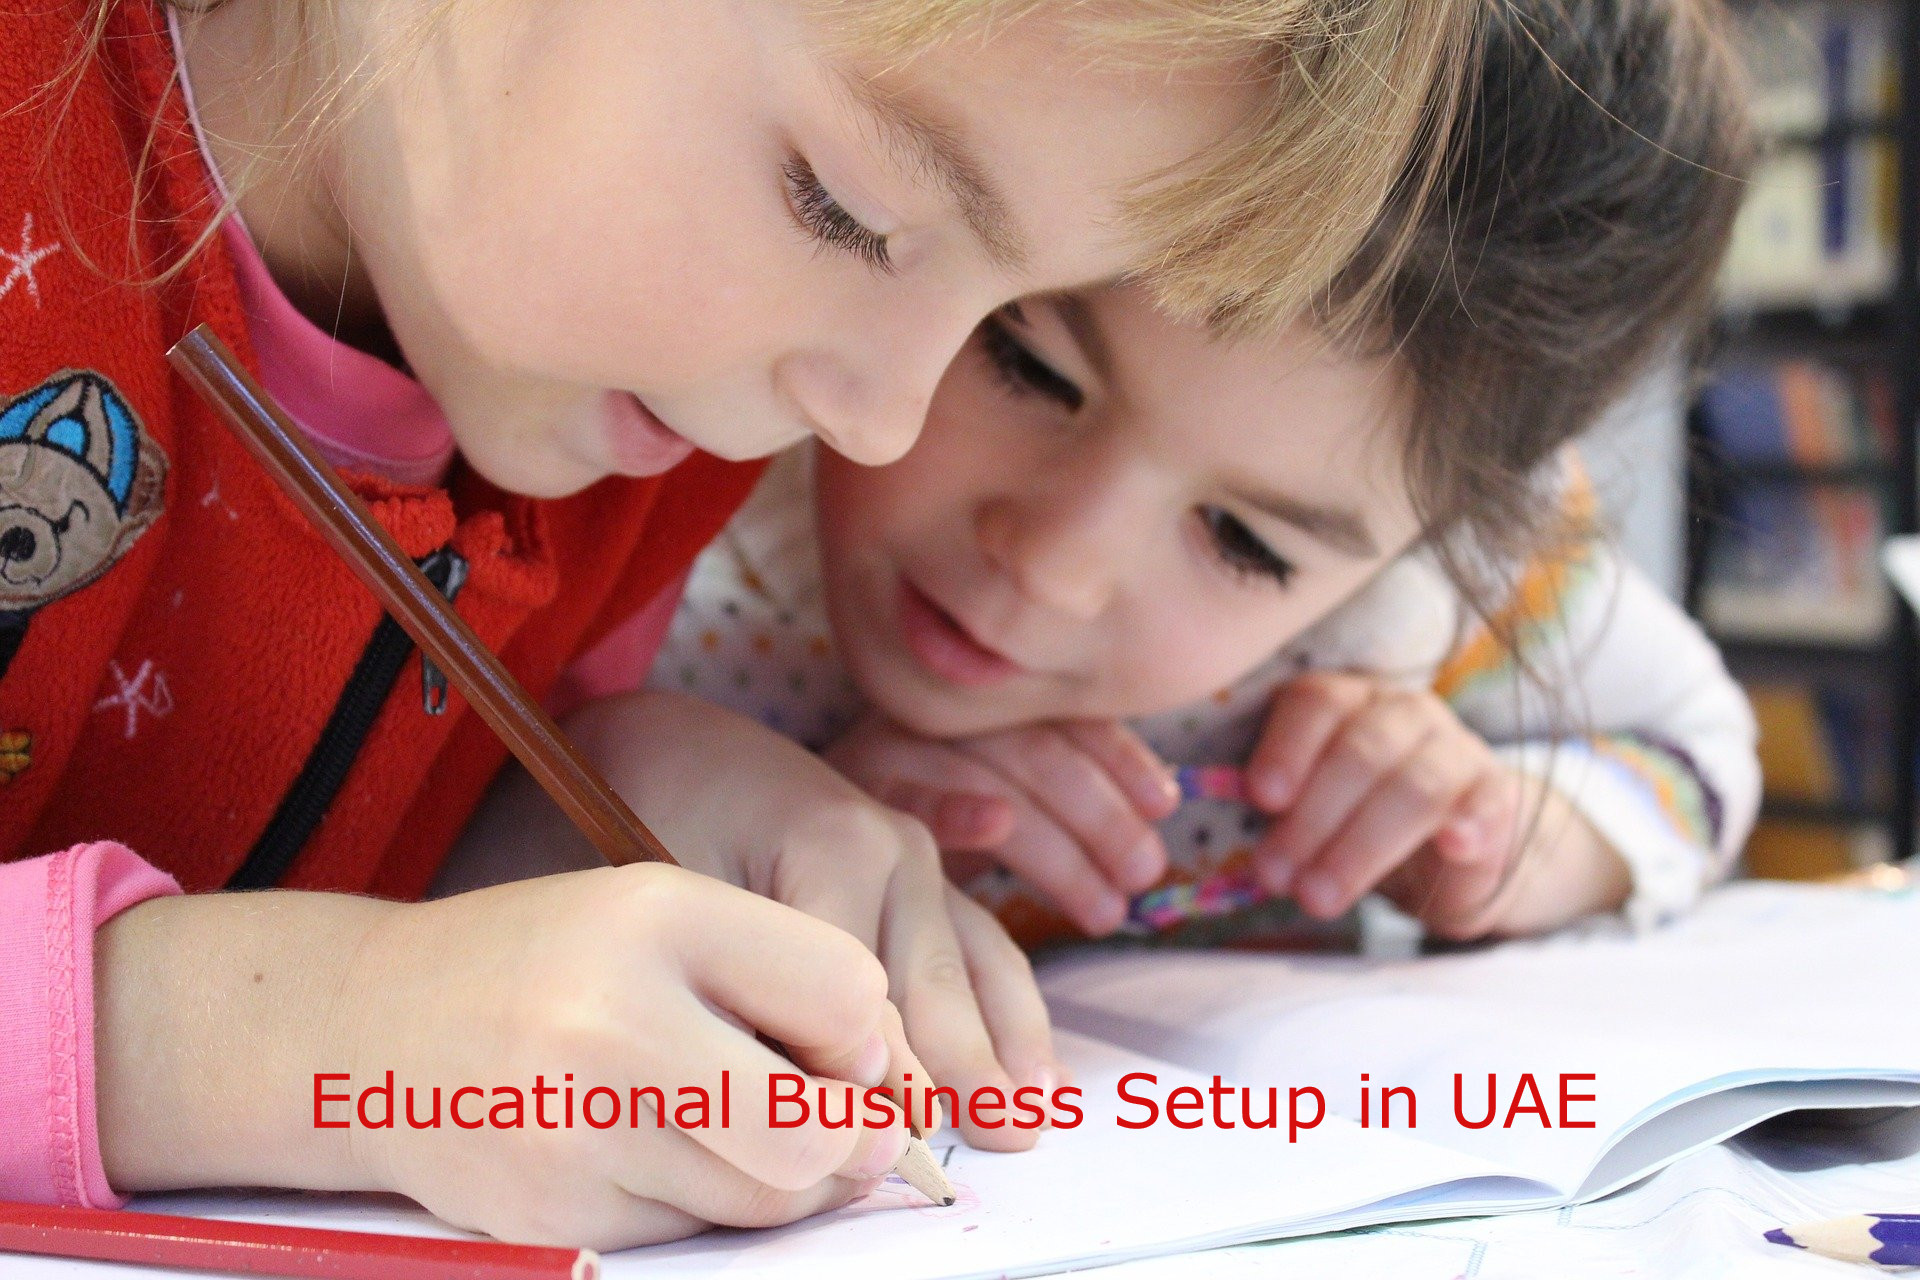 Small Guide on Setting up an Educational Business in UAE in 2021